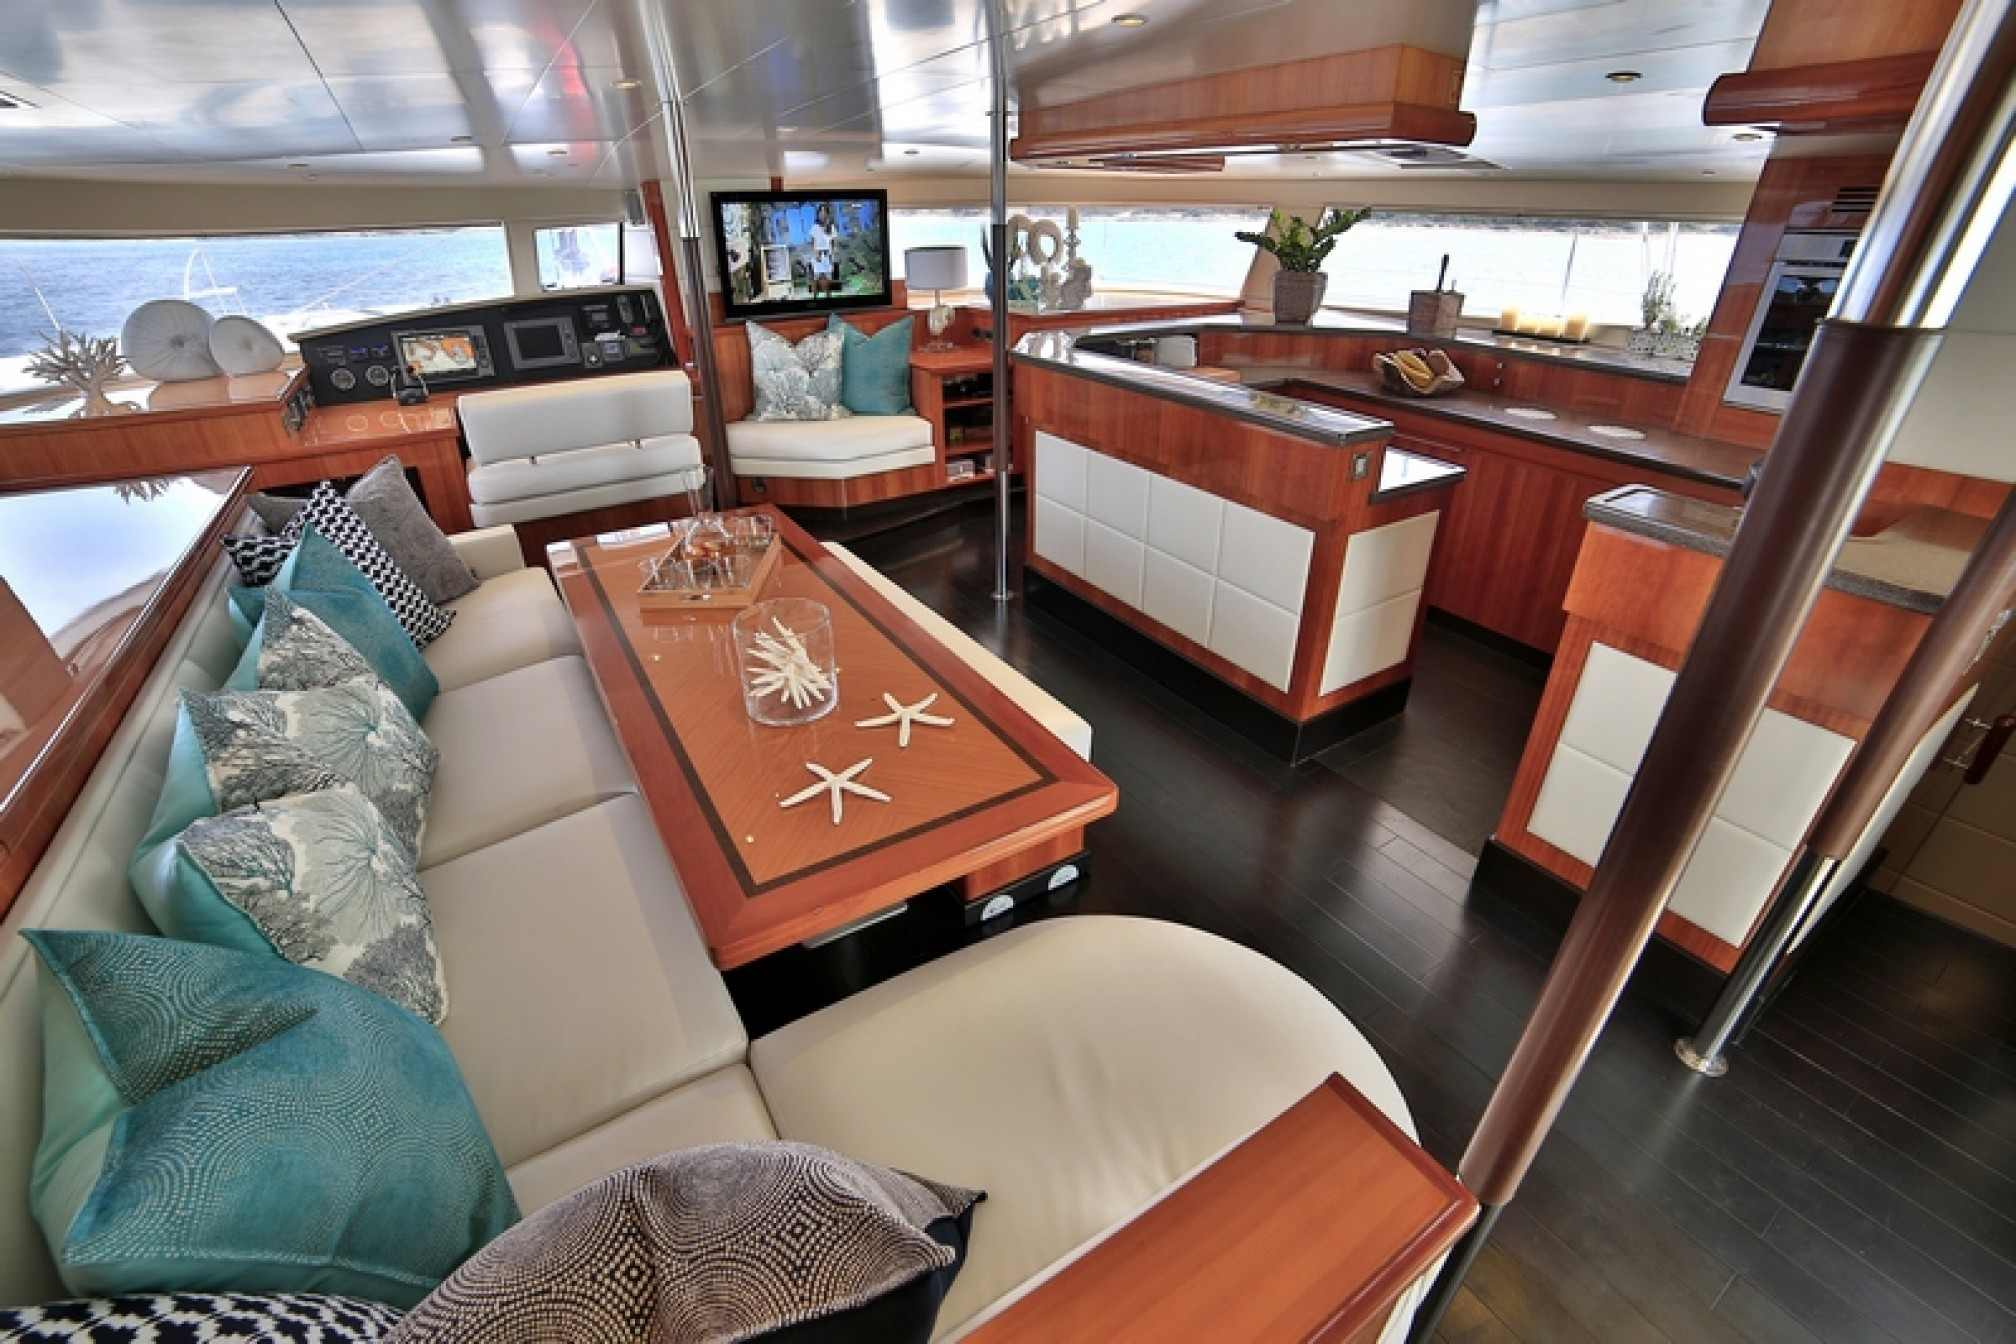 'World's End' catamaran charter salon